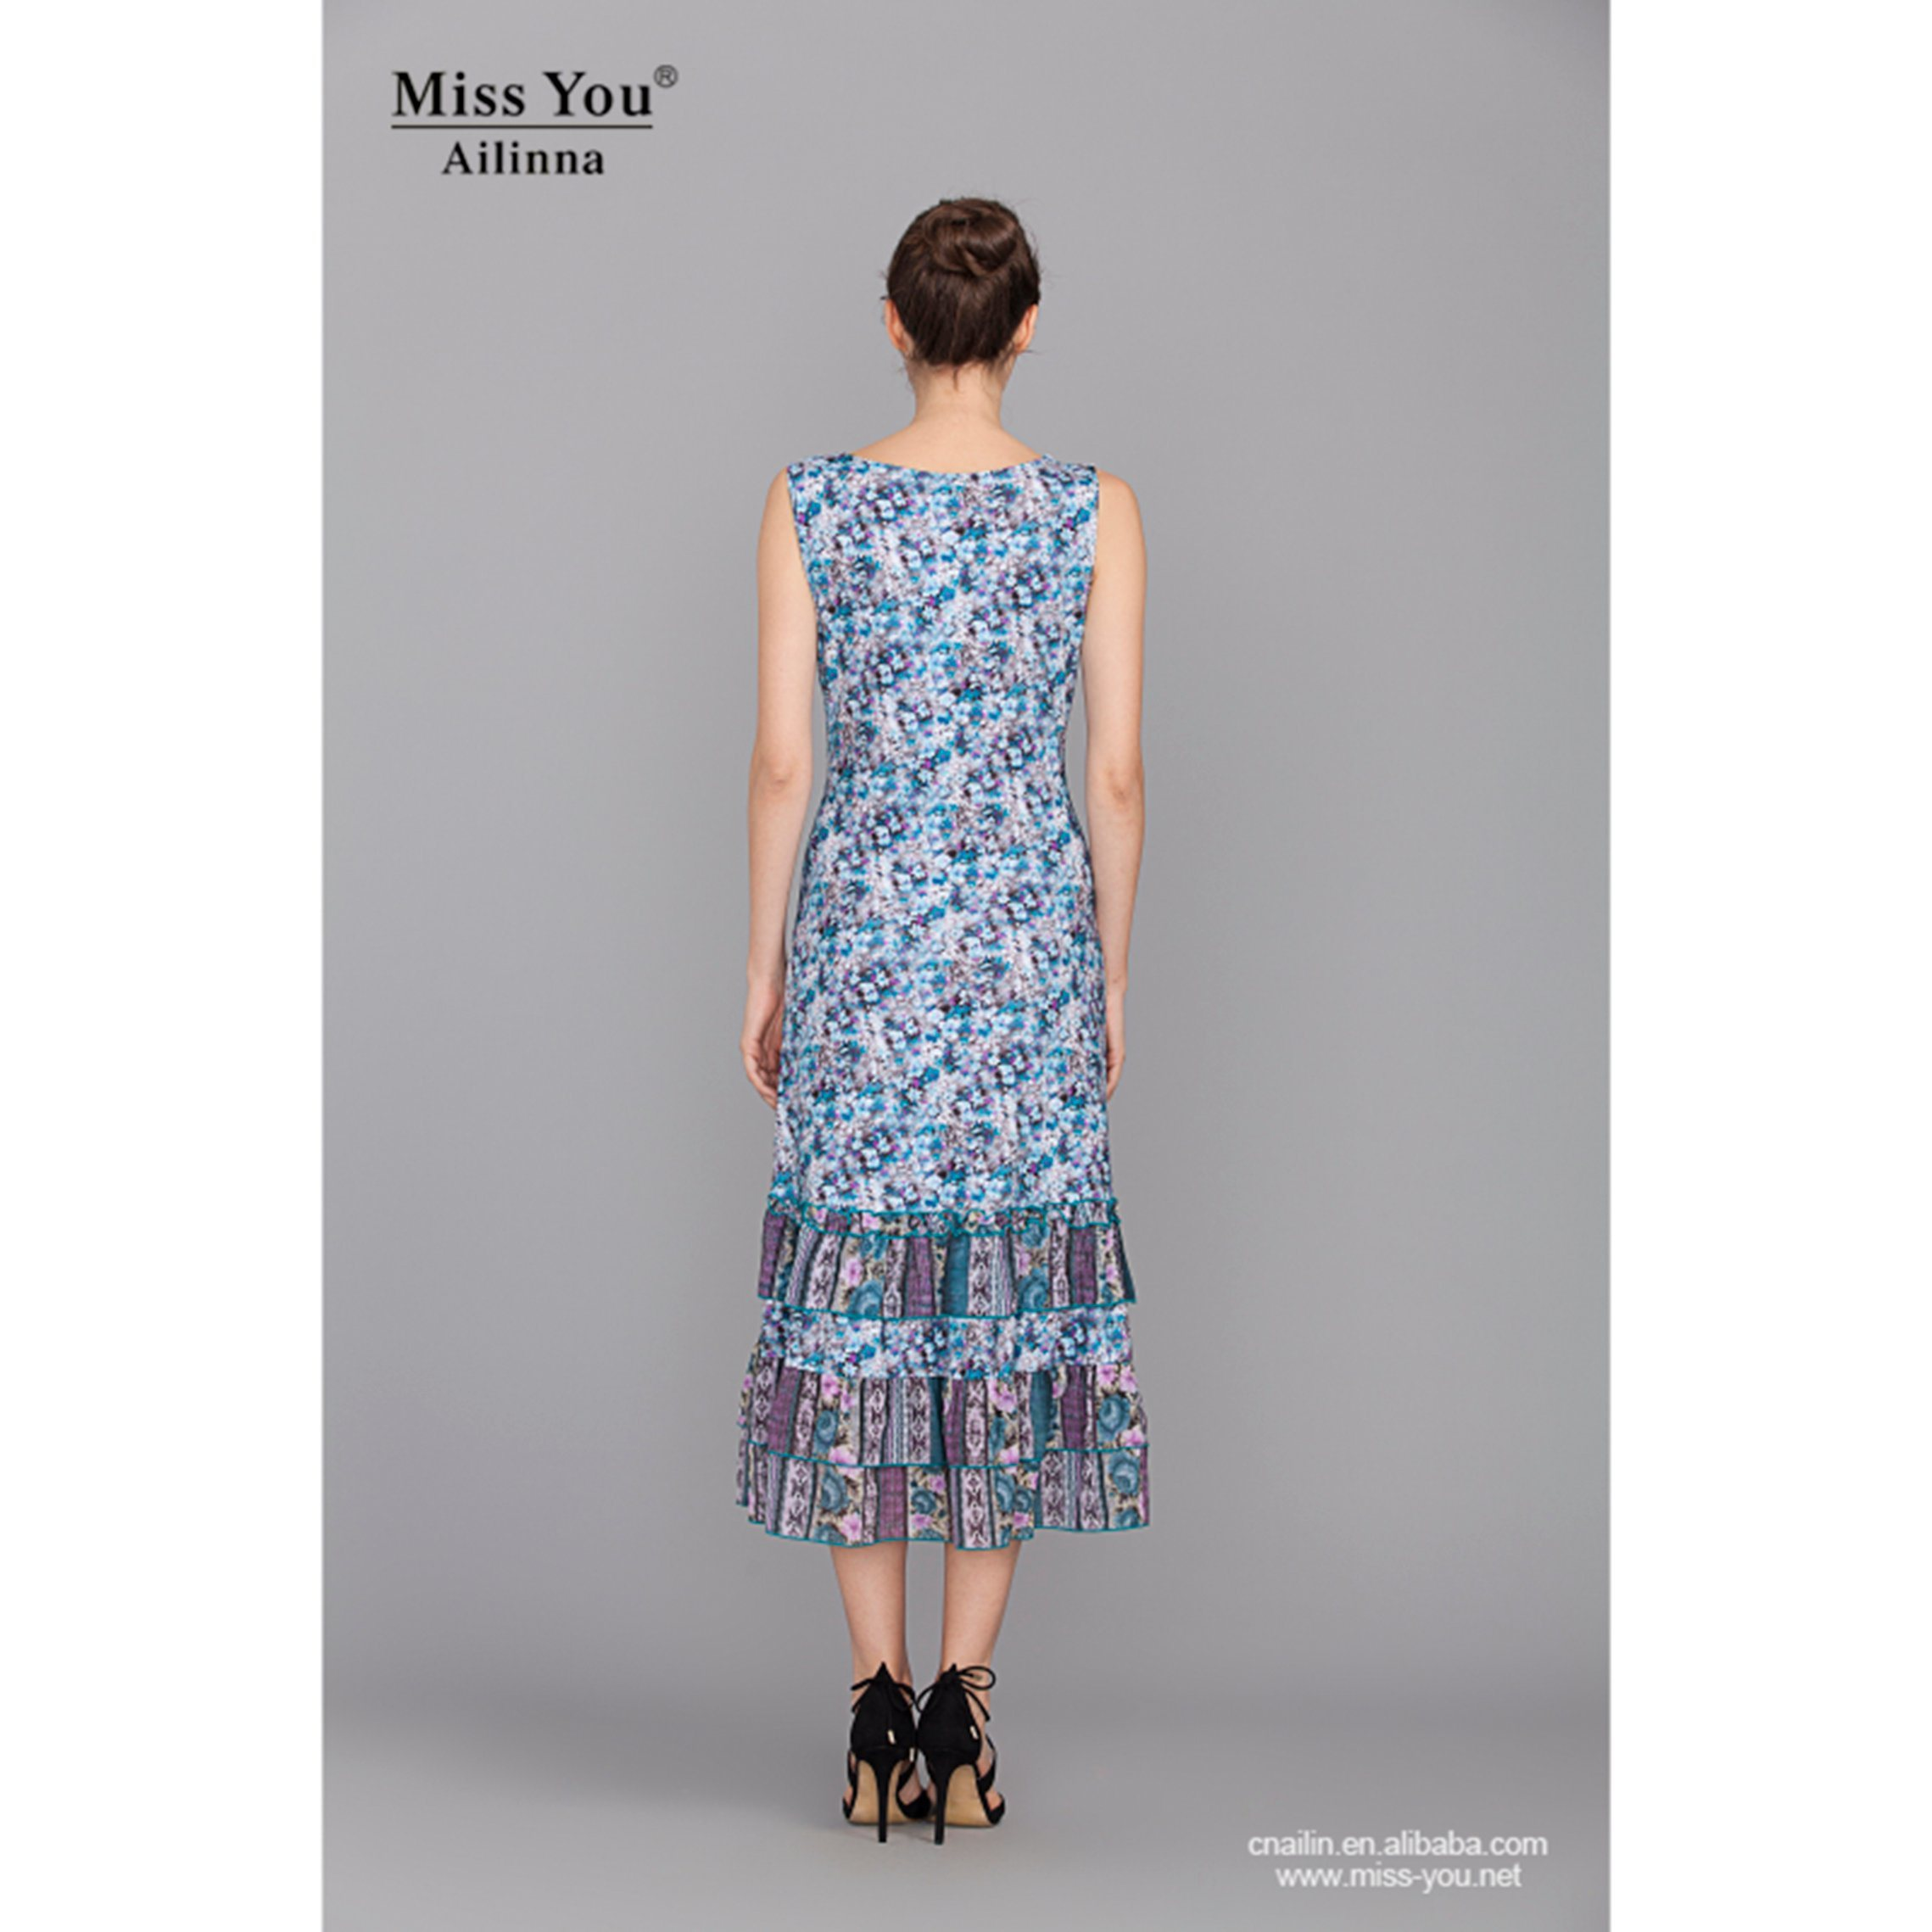 Miss You Ailinna 100938-1 Dress Distributor Blue Floral Slip Dress New Design Beach Dress